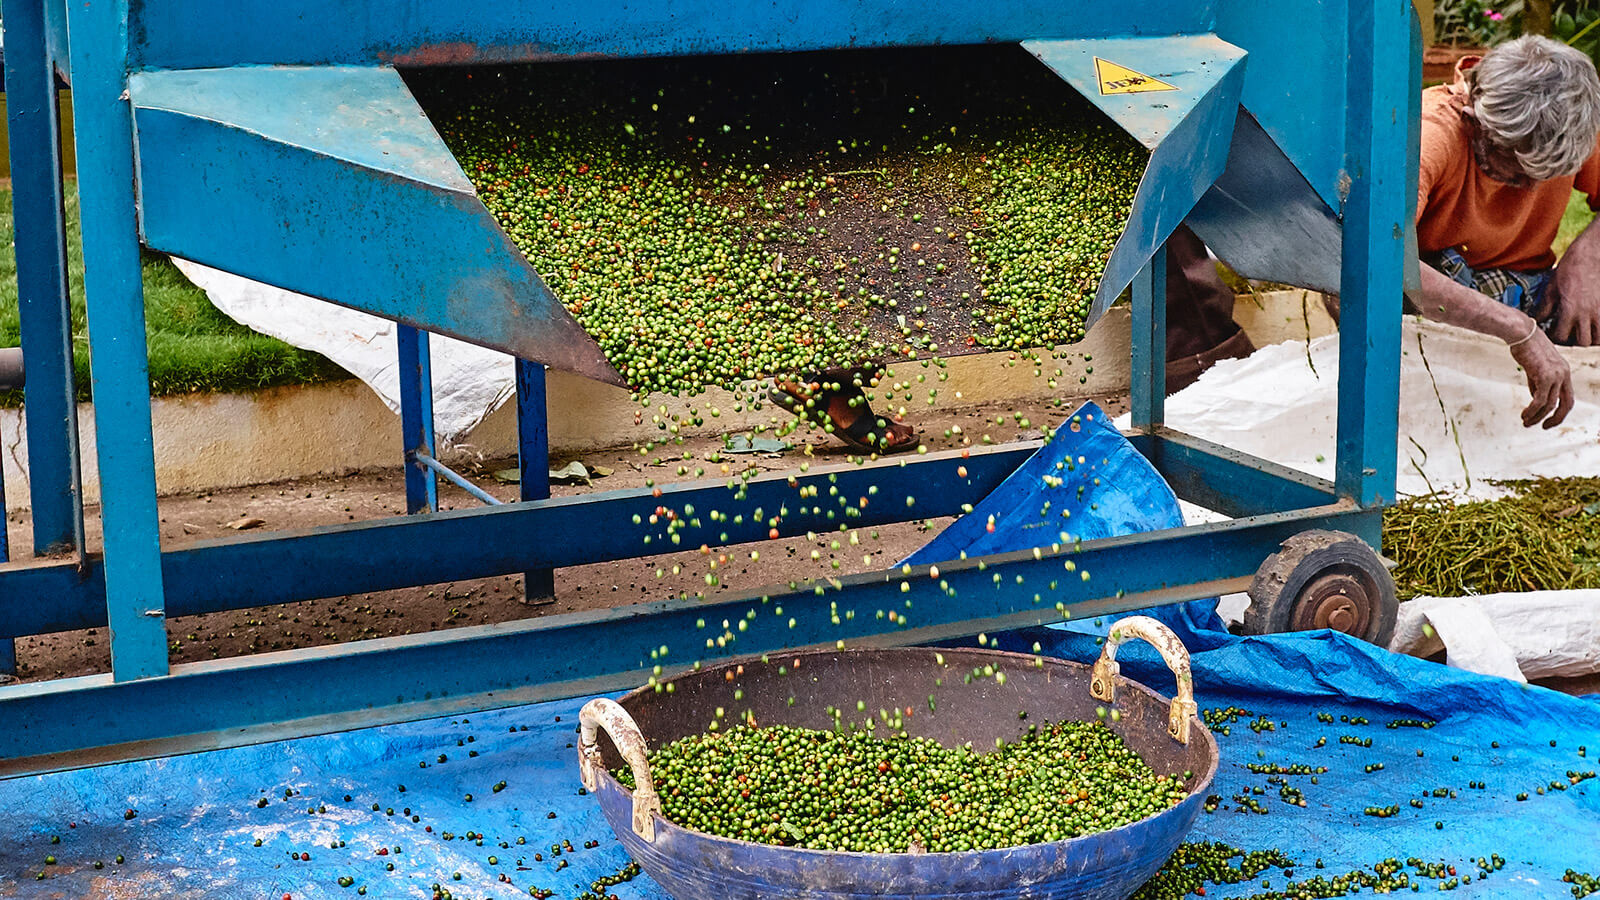 Peppercorn is poured into a sorting machine